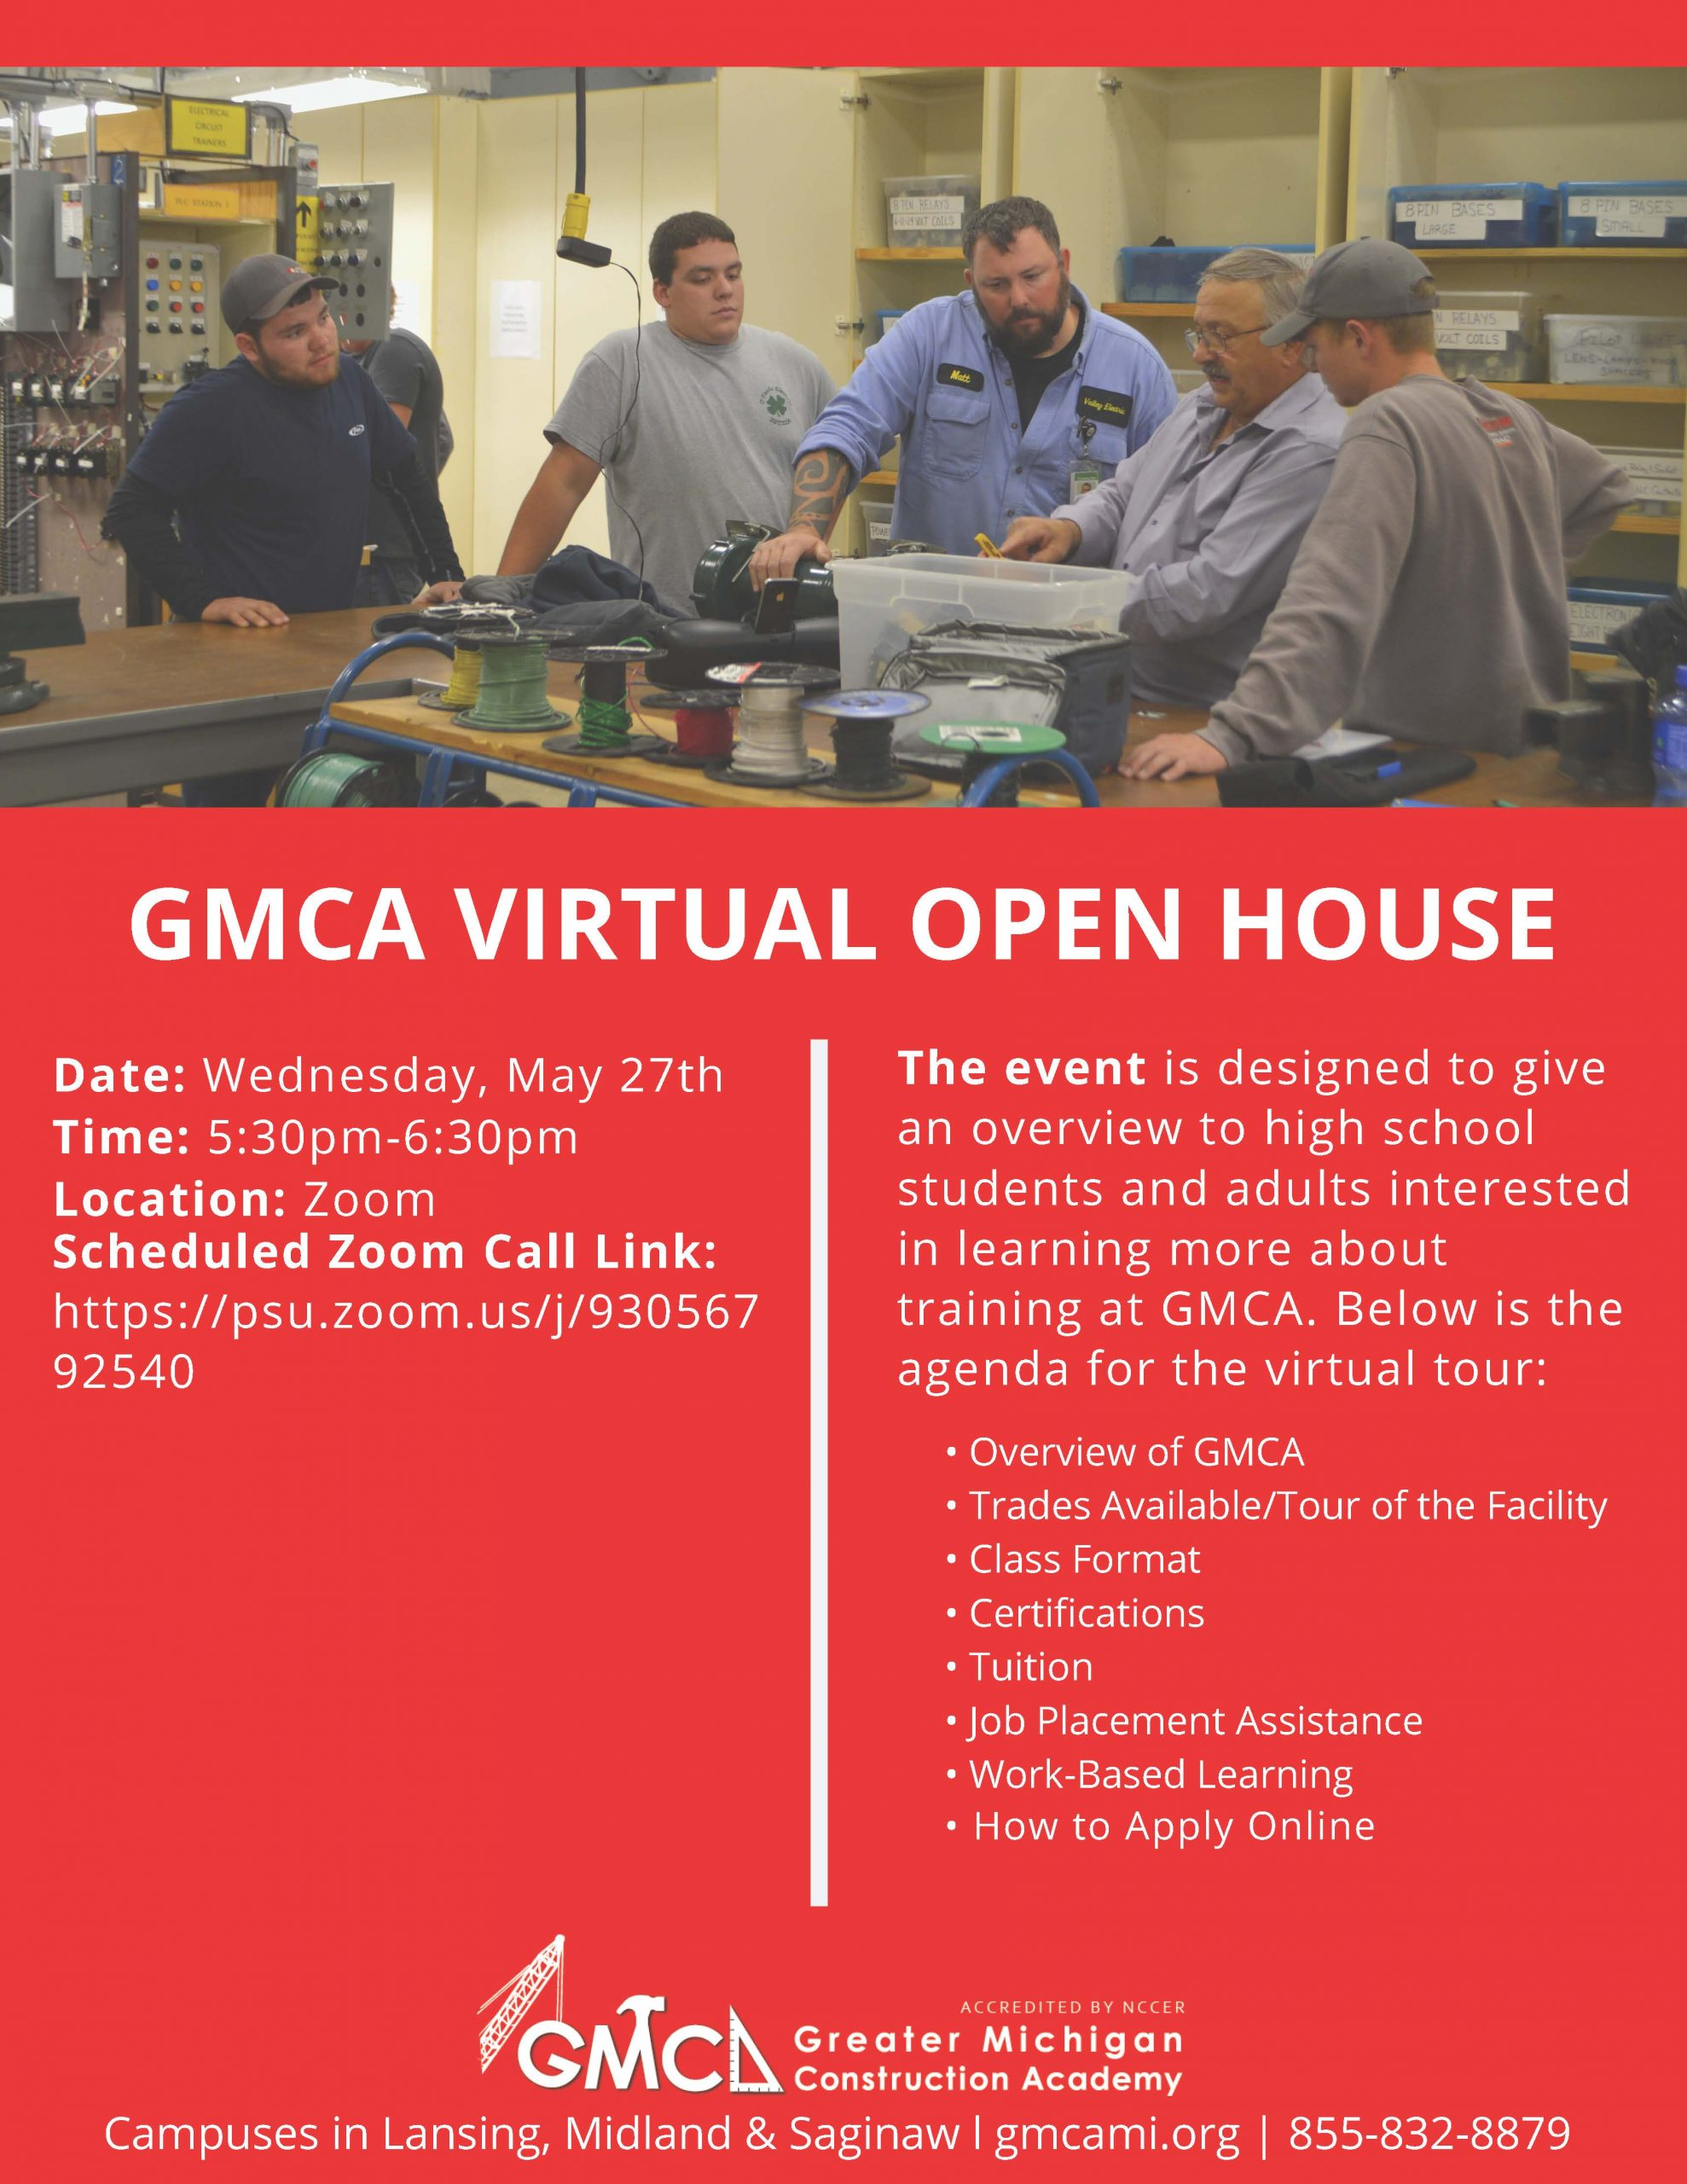 GMCA virtual open house